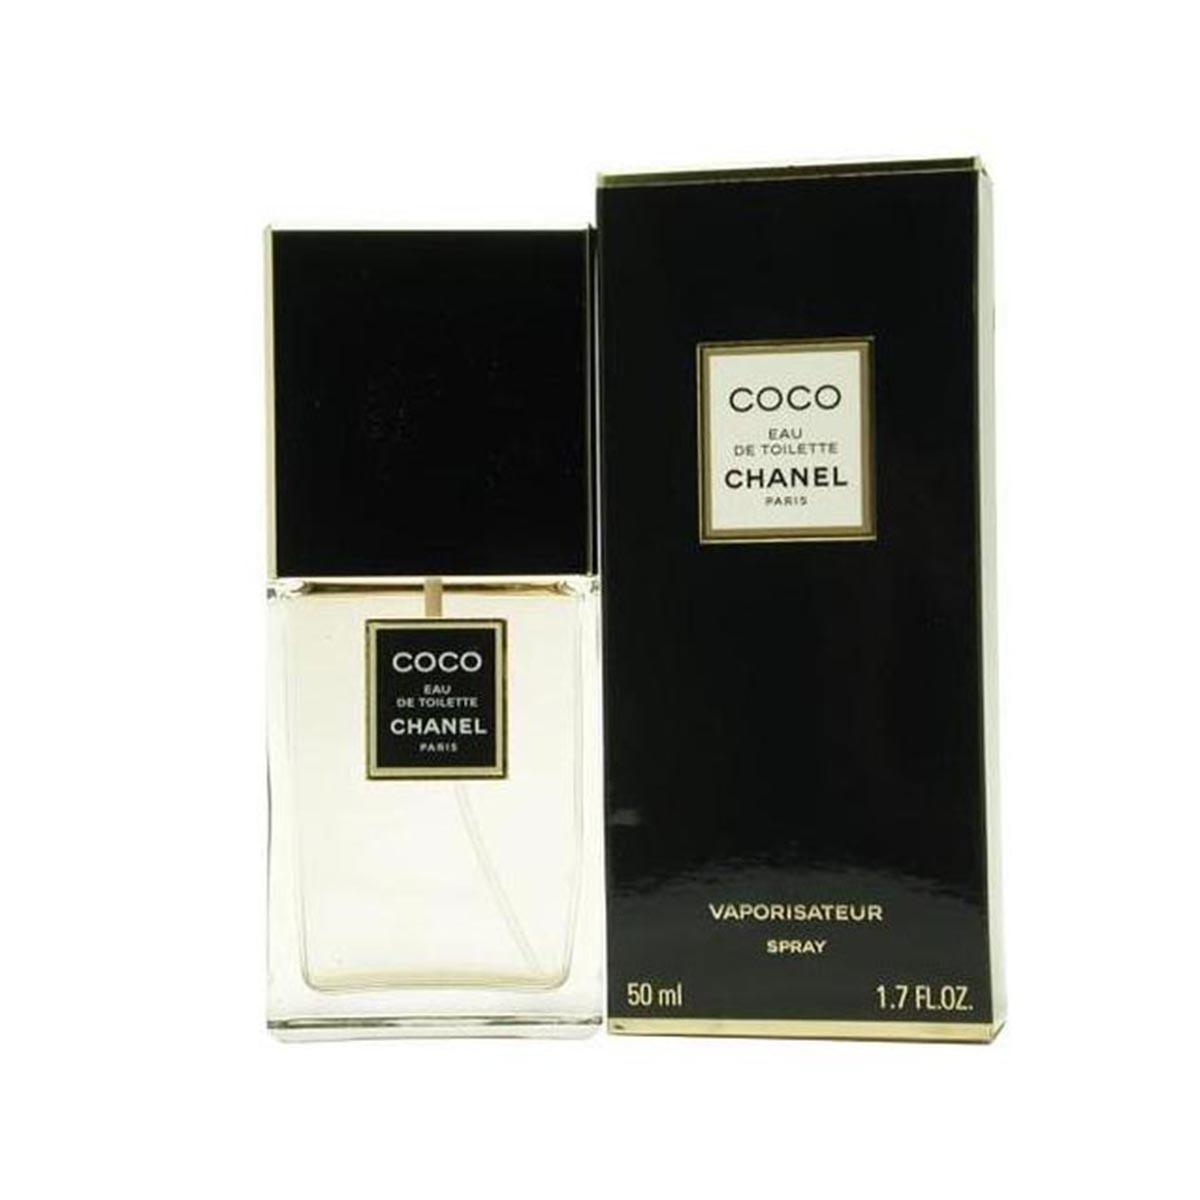 Chanel Coco Eau De Toilette 50 ml